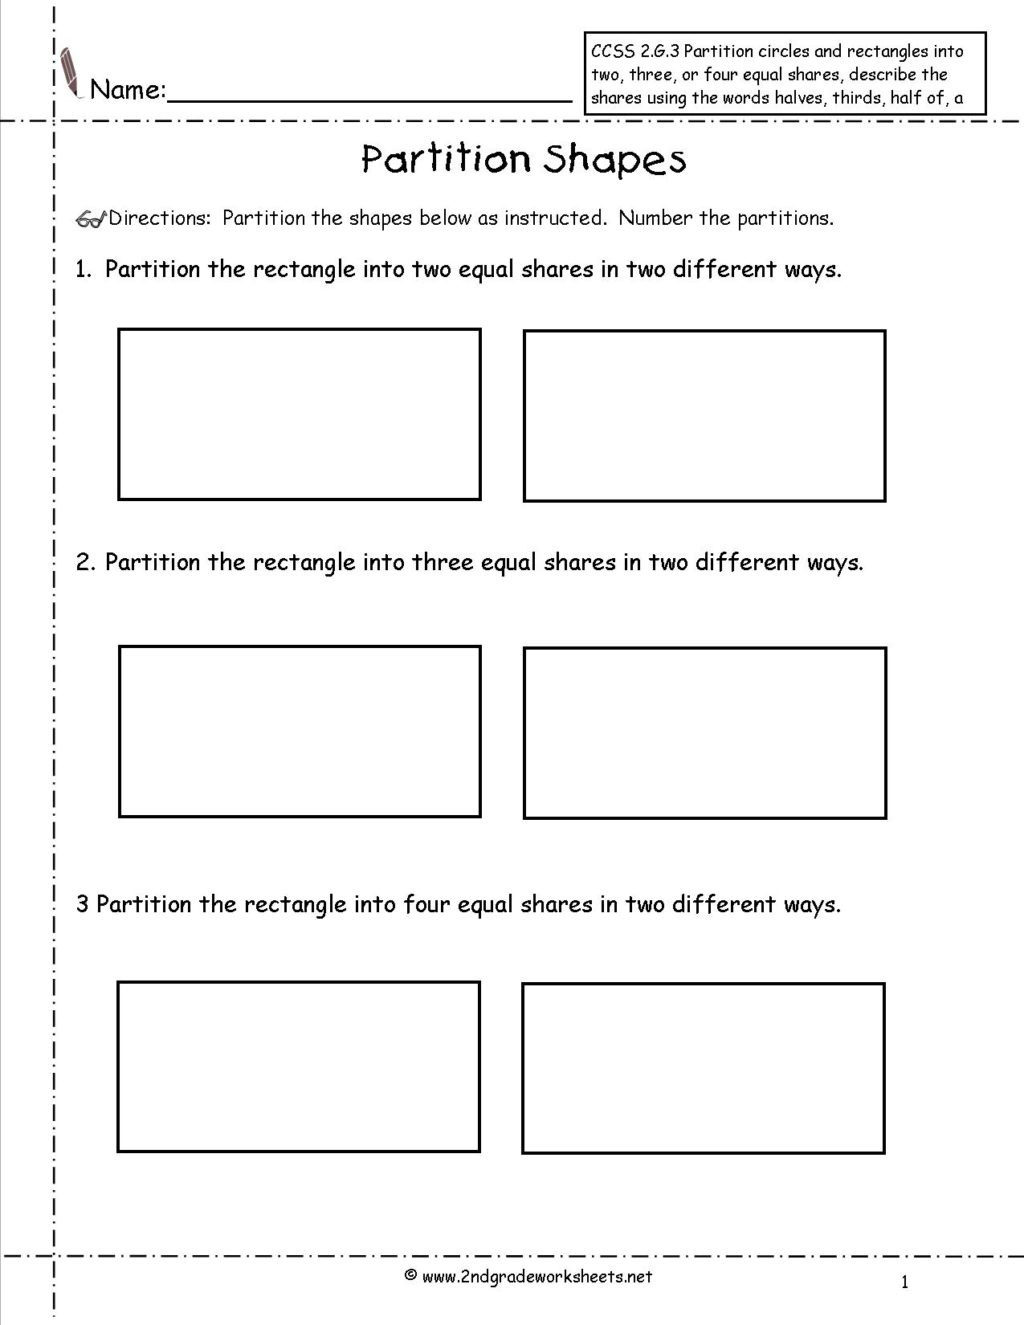 Shapes Worksheets 2nd Grade Worksheet 2nd Grade Geometry Worksheets Ccss G Partition